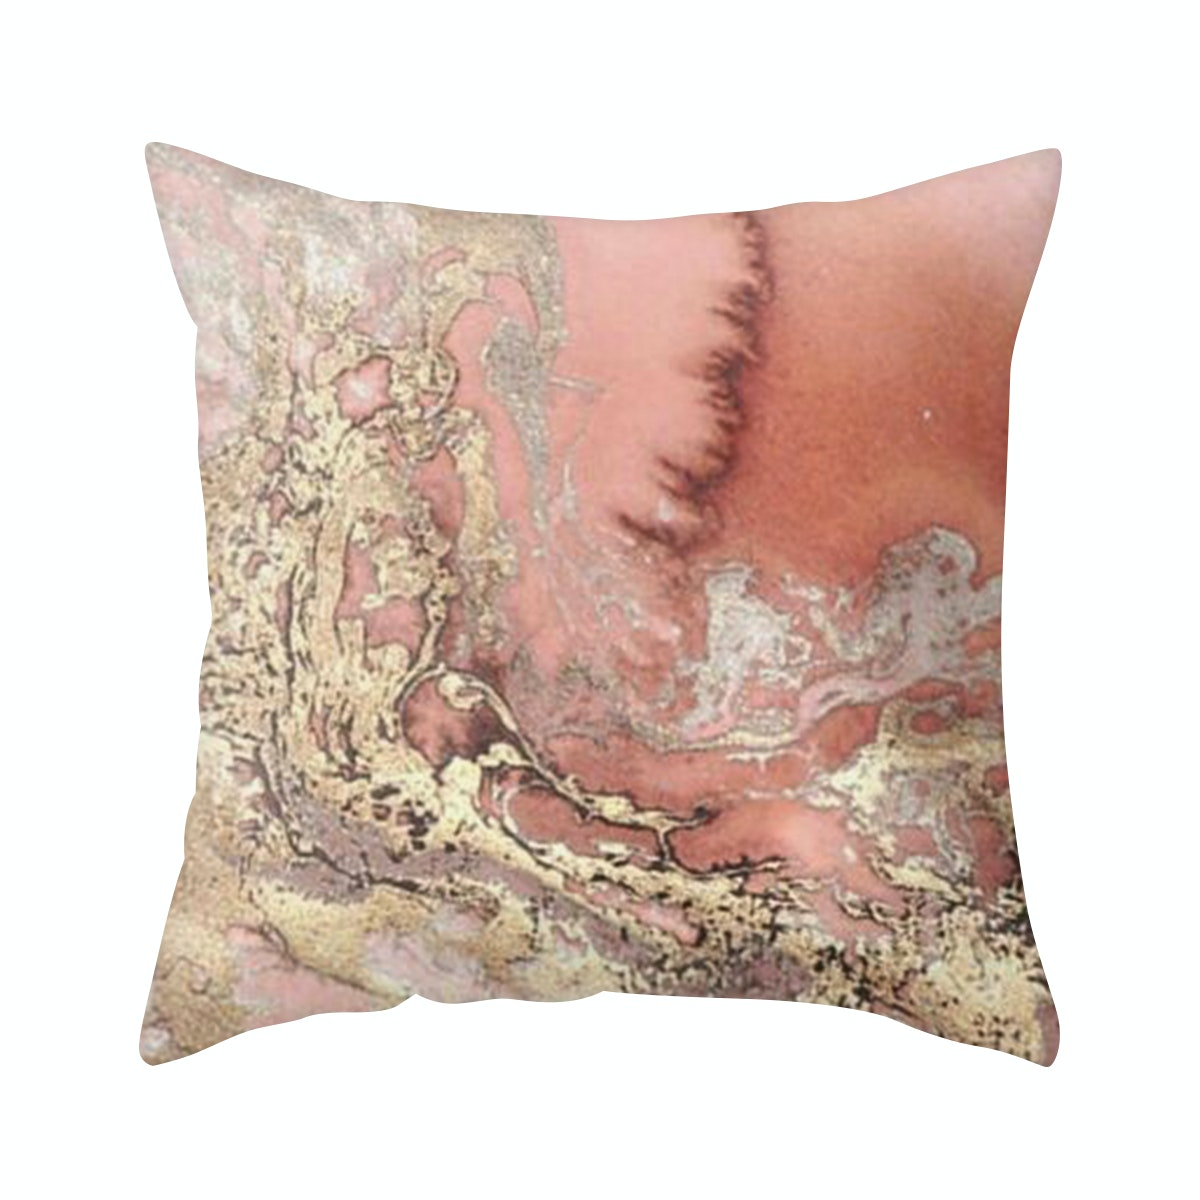 Megallery Cover Cushion NEWP33 40x40cm